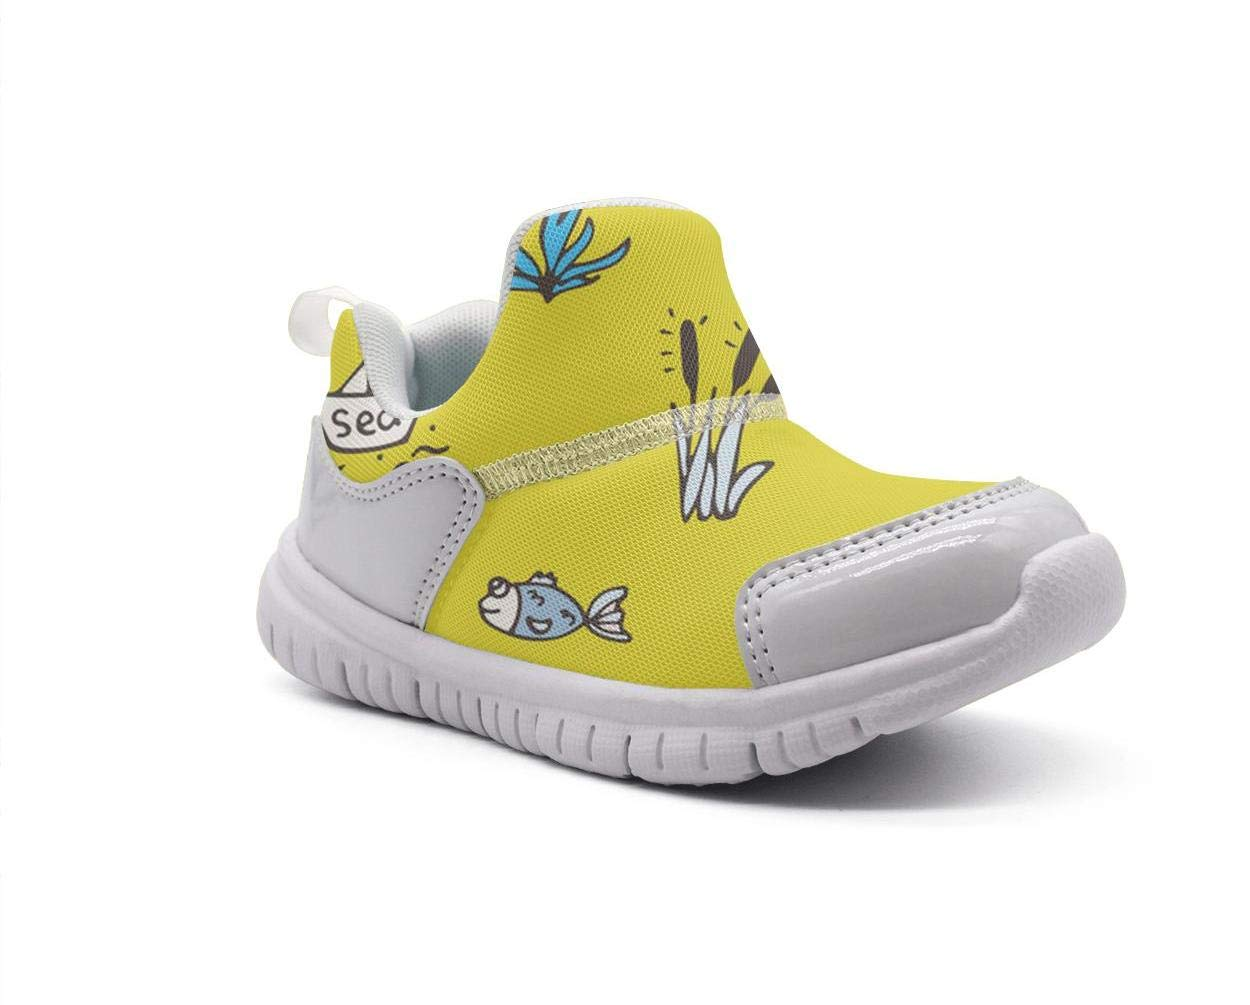 ONEYUAN Children Cool Pandas Bear Fishing Yellow Background Kid Casual Lightweight Sport Shoes Sneakers Walking Athletic Shoes